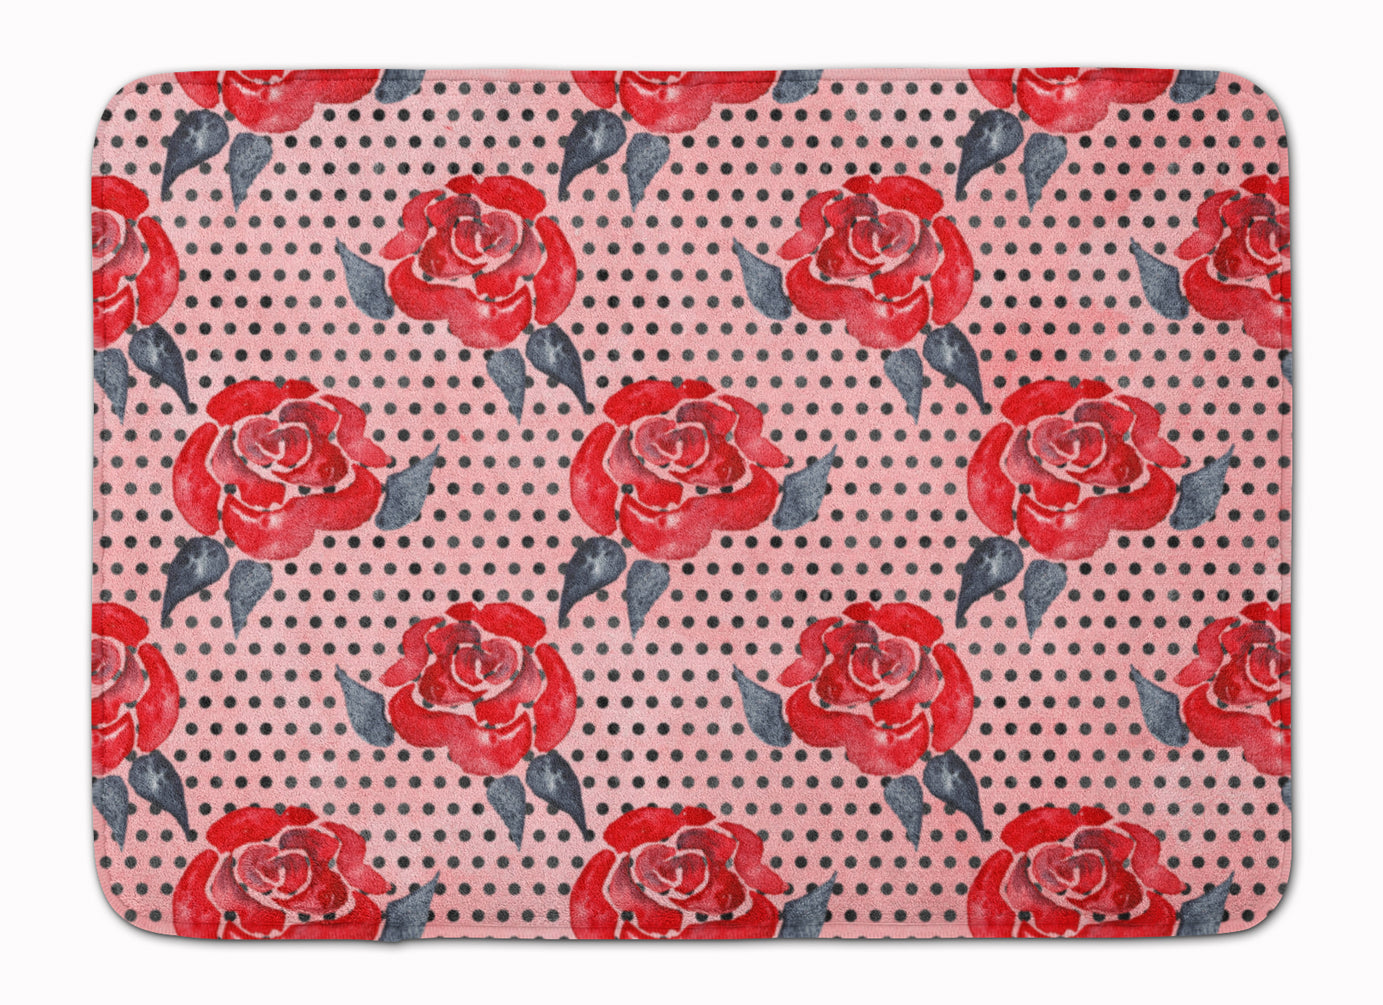 Watercolor Red Roses and Polkadots Machine Washable Memory Foam Mat BB7513RUG by Caroline's Treasures